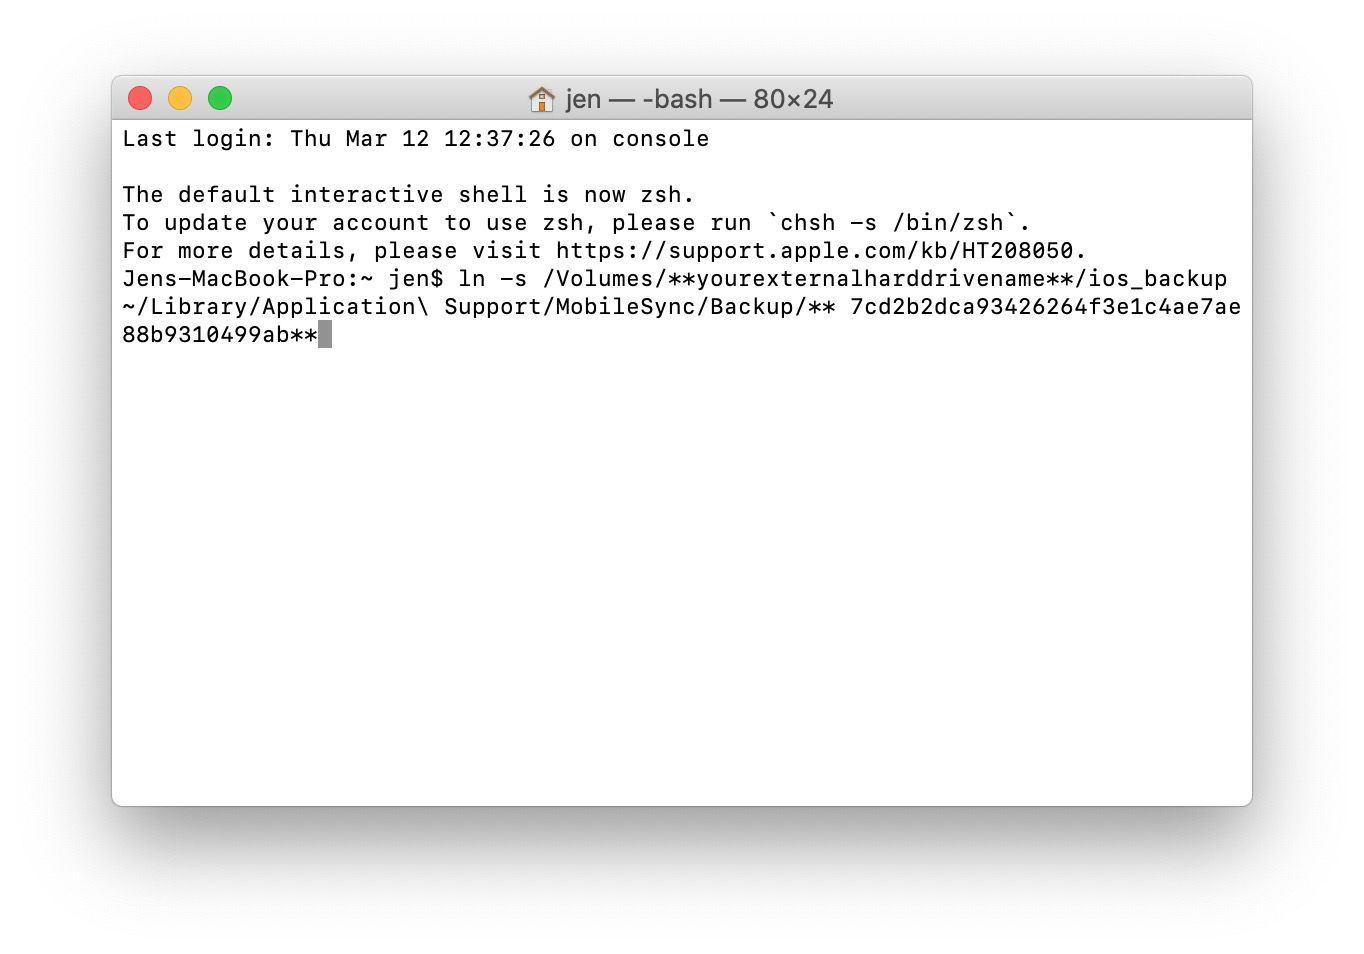 MacOS Terminal with commands for creating a symlink